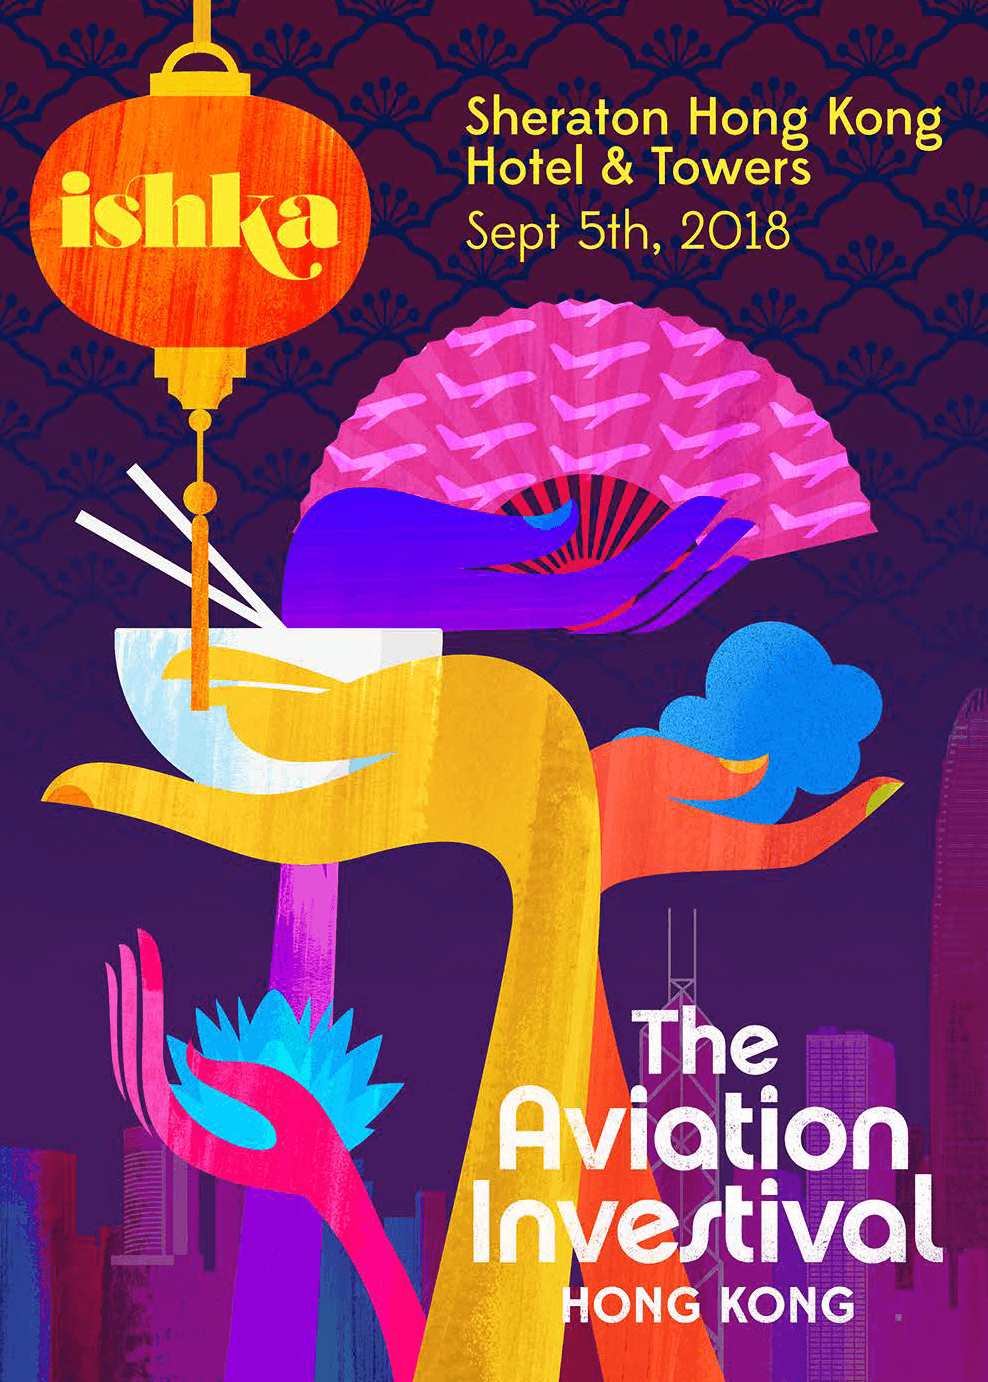 The Aviation Festival Hong Kong 2018